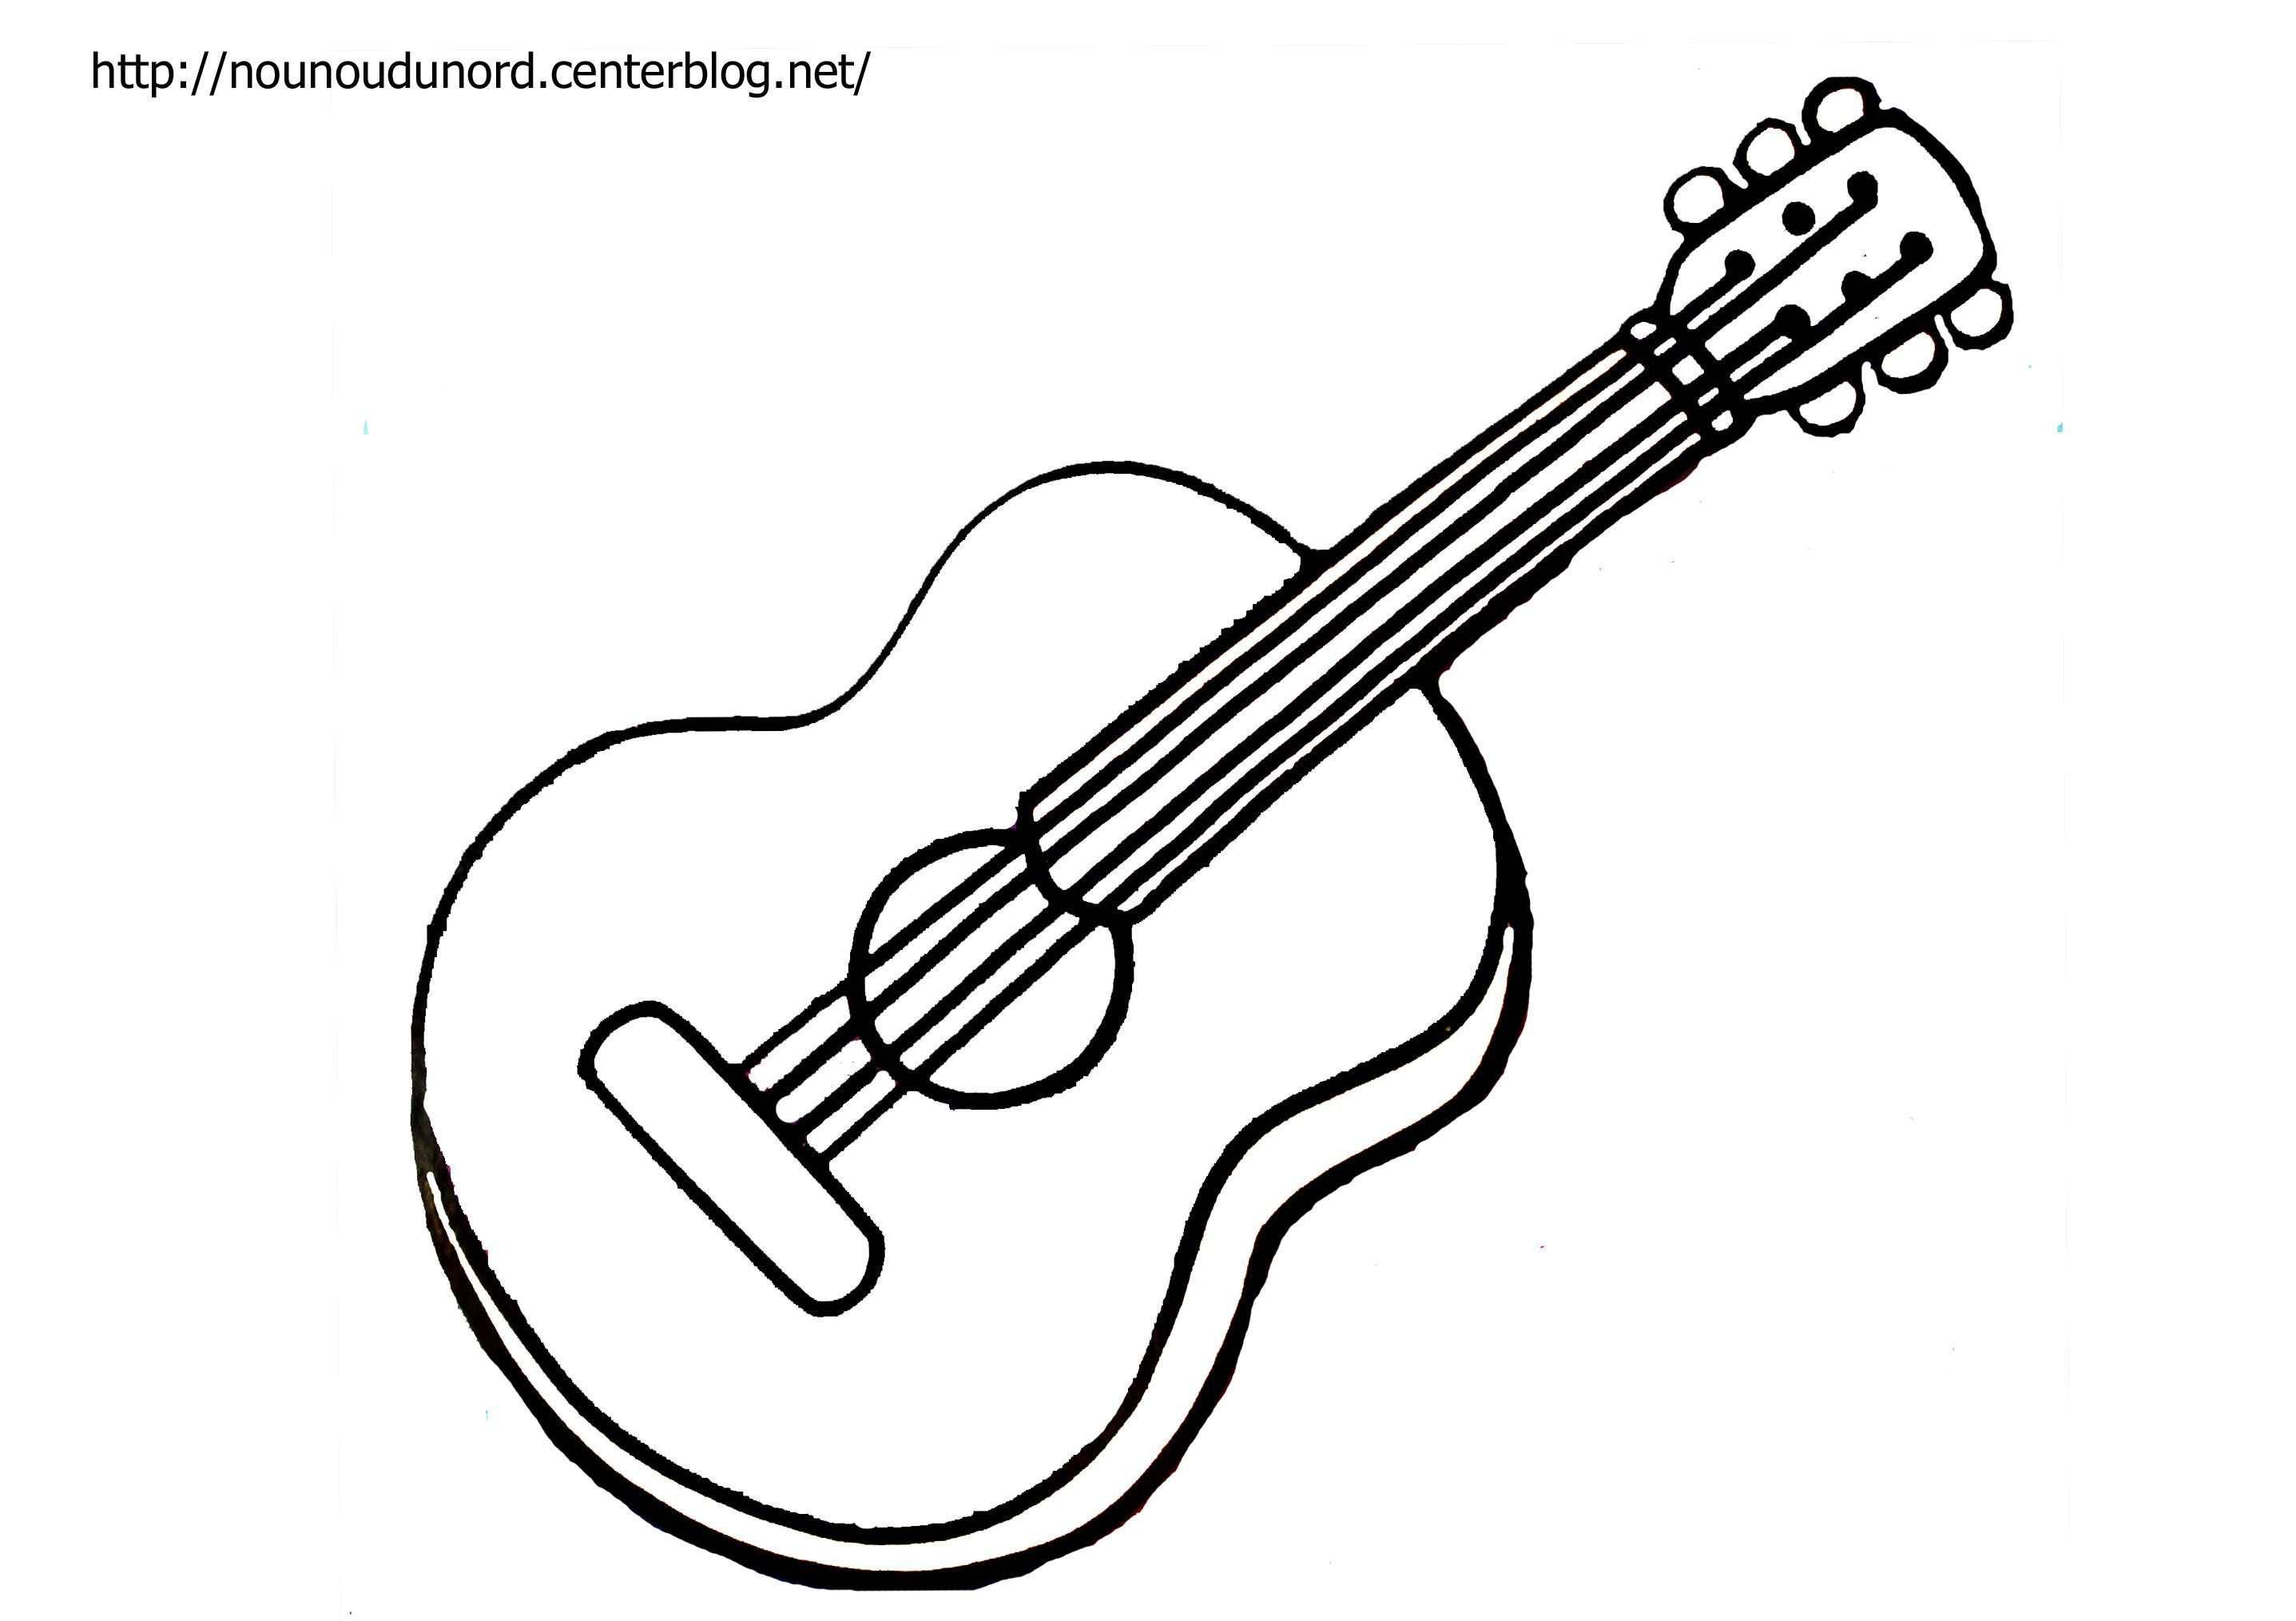 1548 Coloriage Guitare Dessine Par Nounoudunord as well Article Page Blanche 48446609 together with Arc D Indien Avec 3 Fleches additionally Fiche778j in addition 2. on mon anniversaire